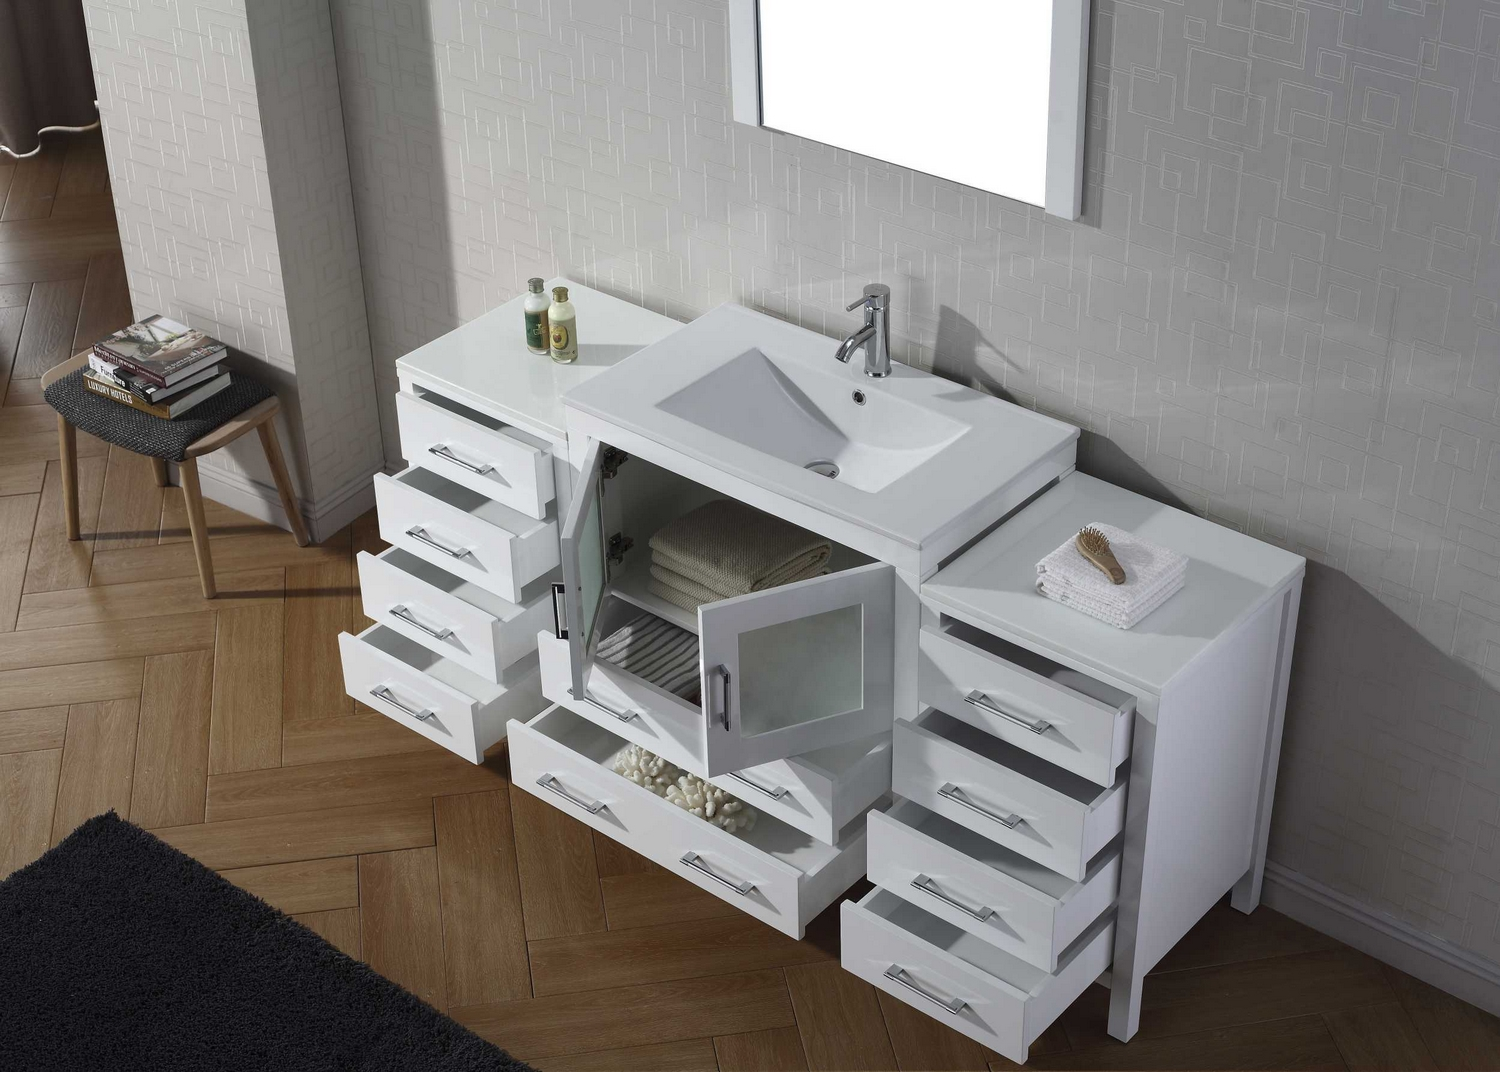 Virtu USA Dior Single Bathroom Vanity Cabinet Set In Zebra - Single bathroom vanity cabinets